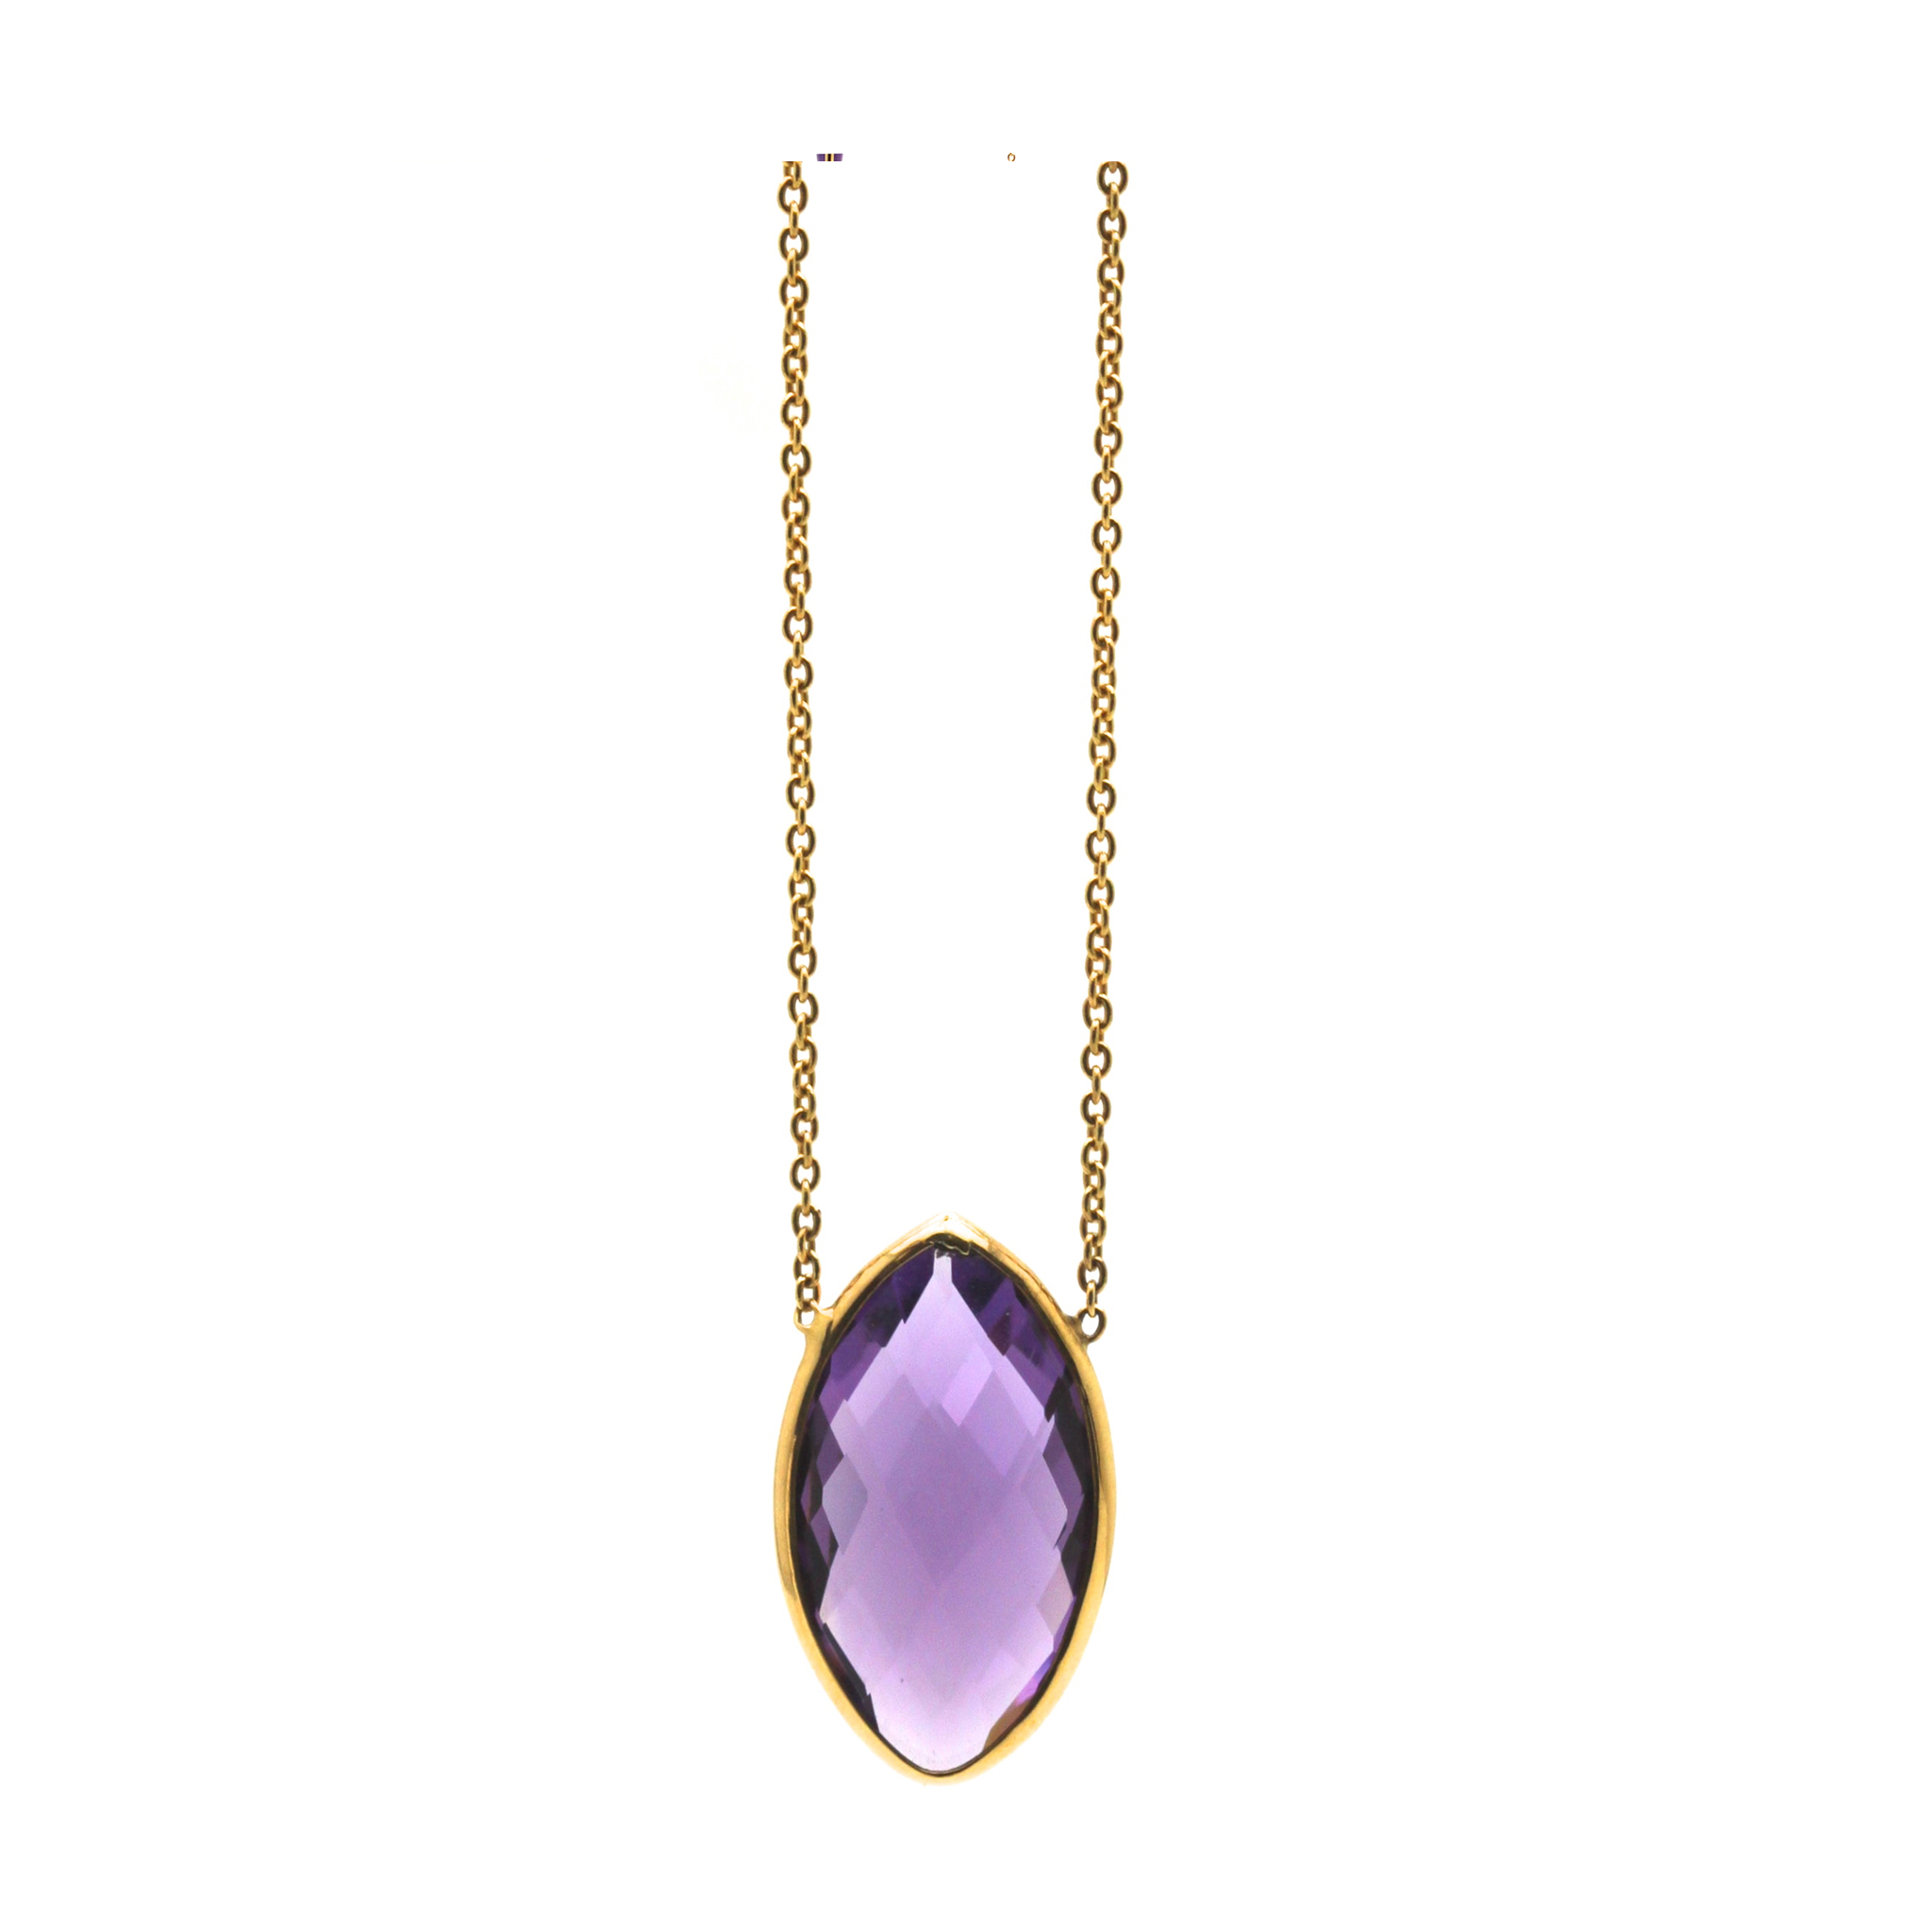 18K Yellow Gold Necklace With Amethyst Marquise